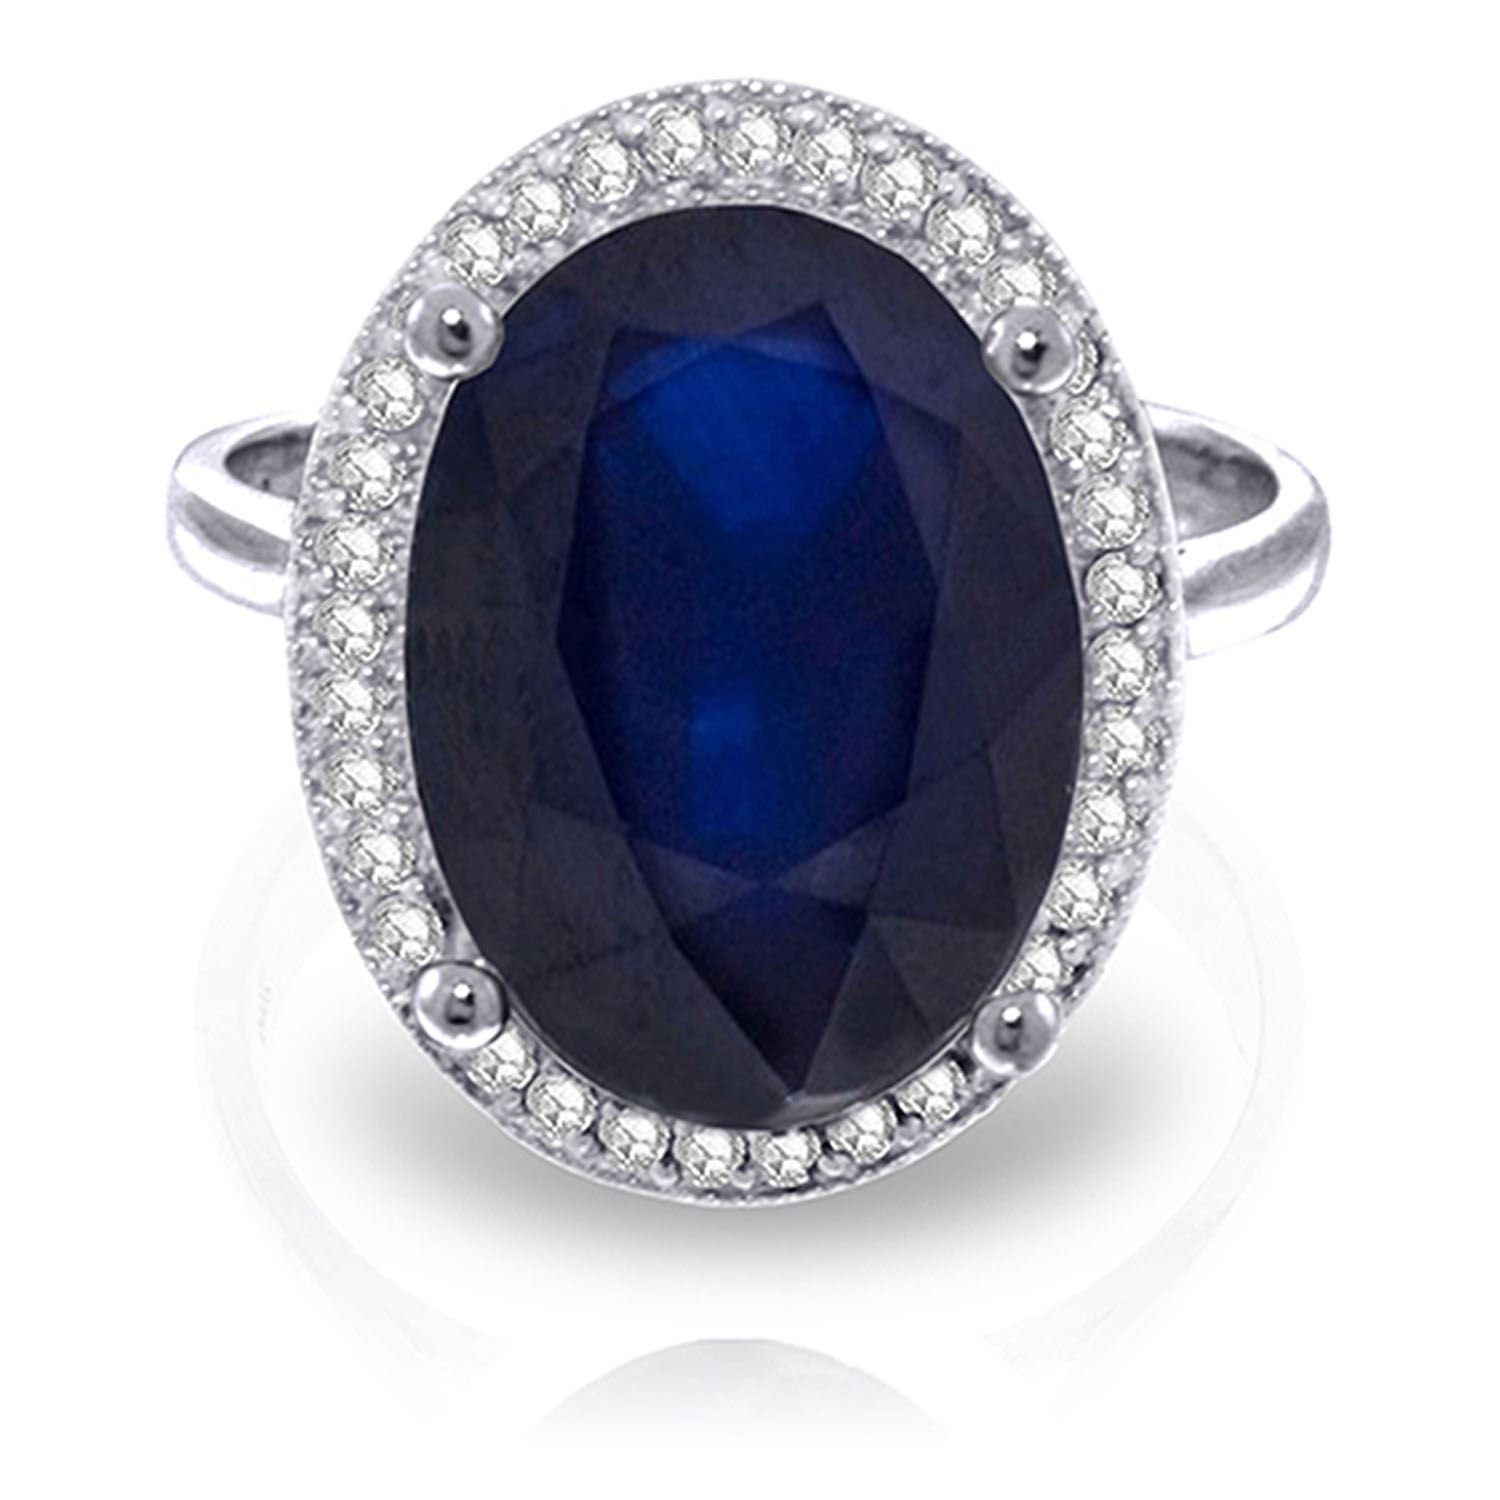 ALARRI 6.58 Carat 14K Solid White Gold Love Is Generous Sapphire Diamond Ring With Ring Size 6